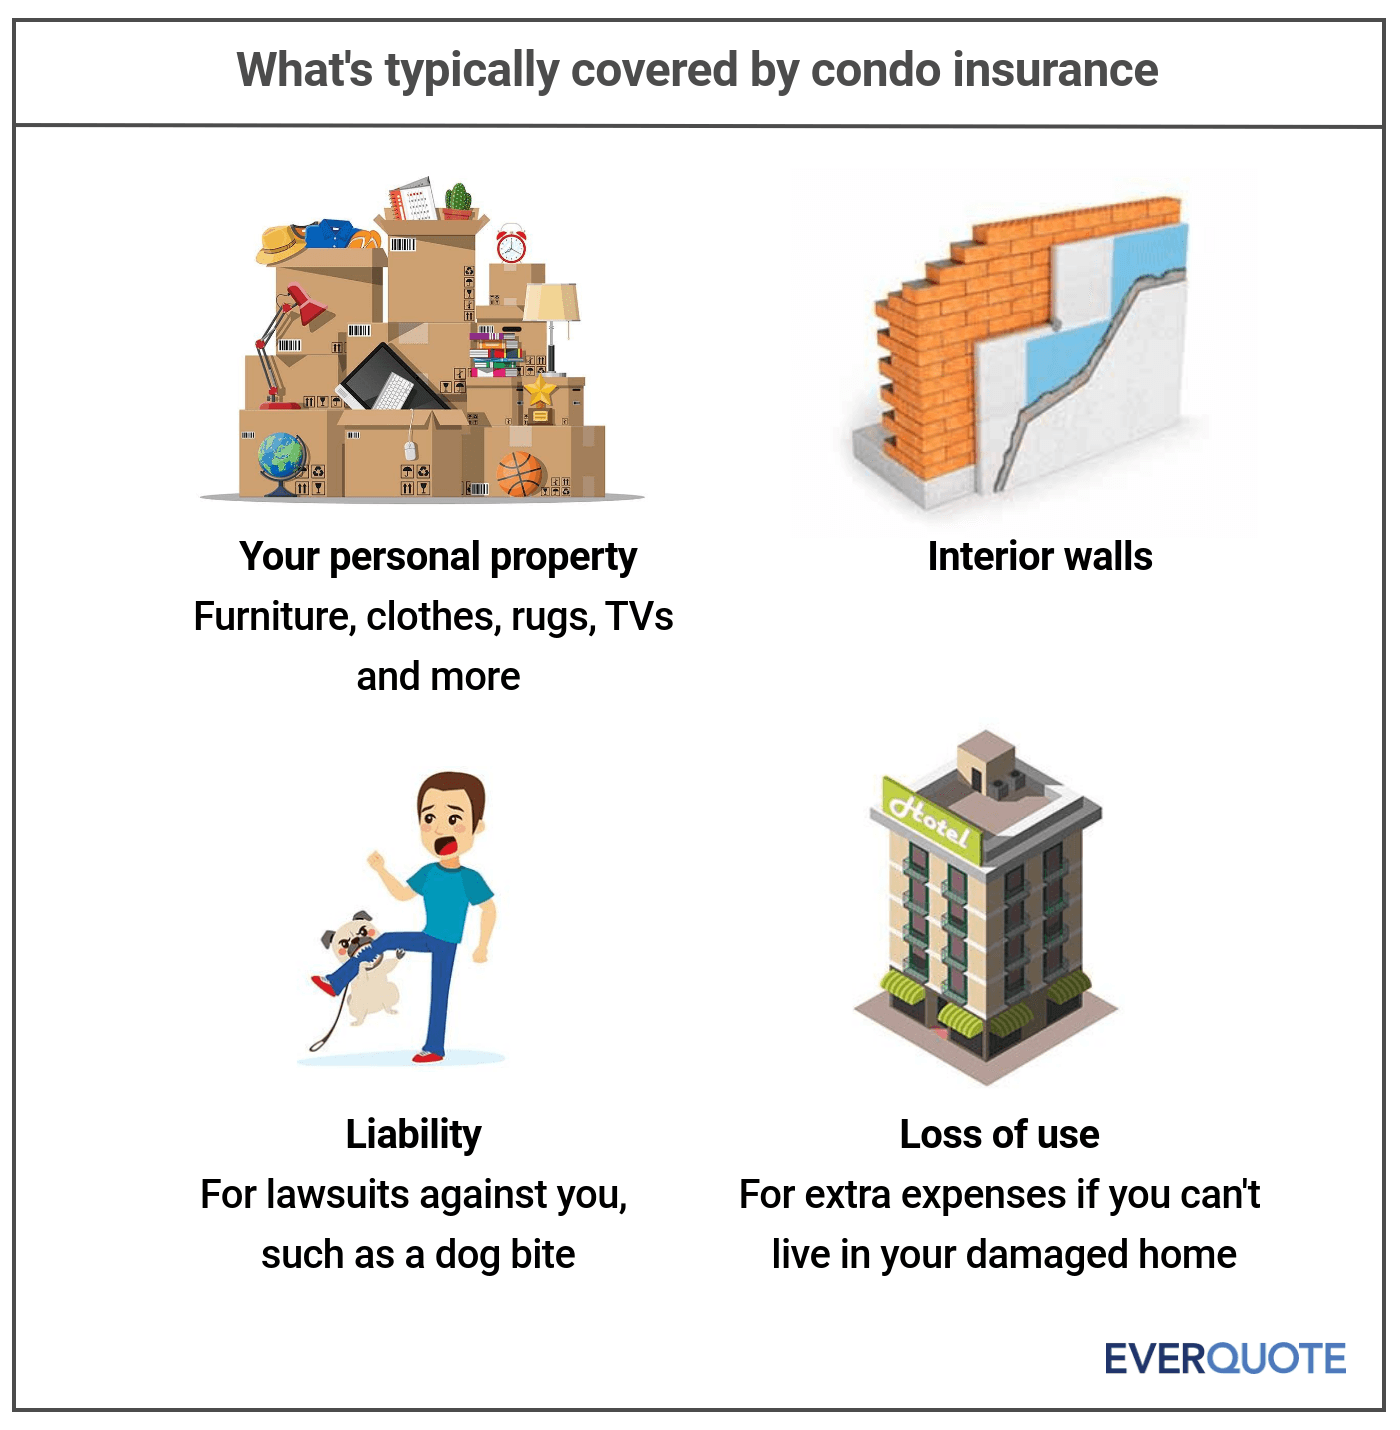 What's covered by condo insurance